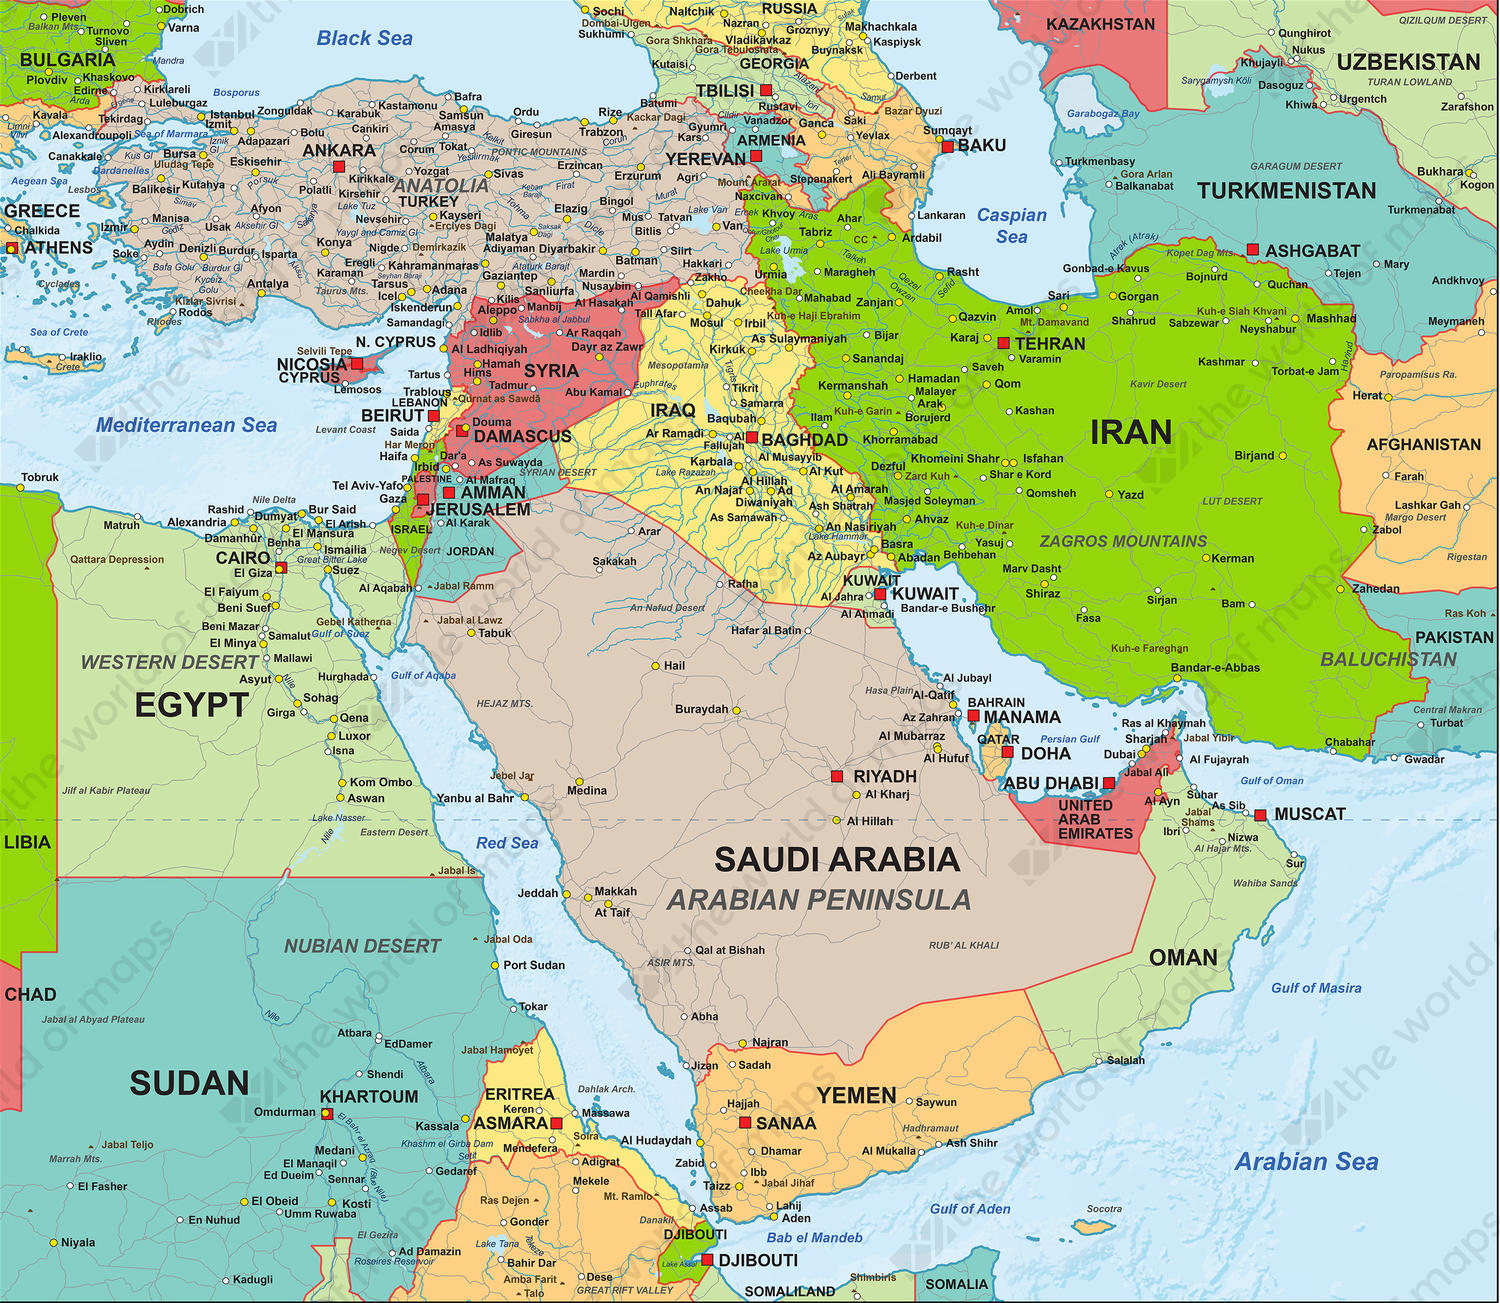 Middle East World Map Digital Map Middle East Political 1307 | The World of Maps.com